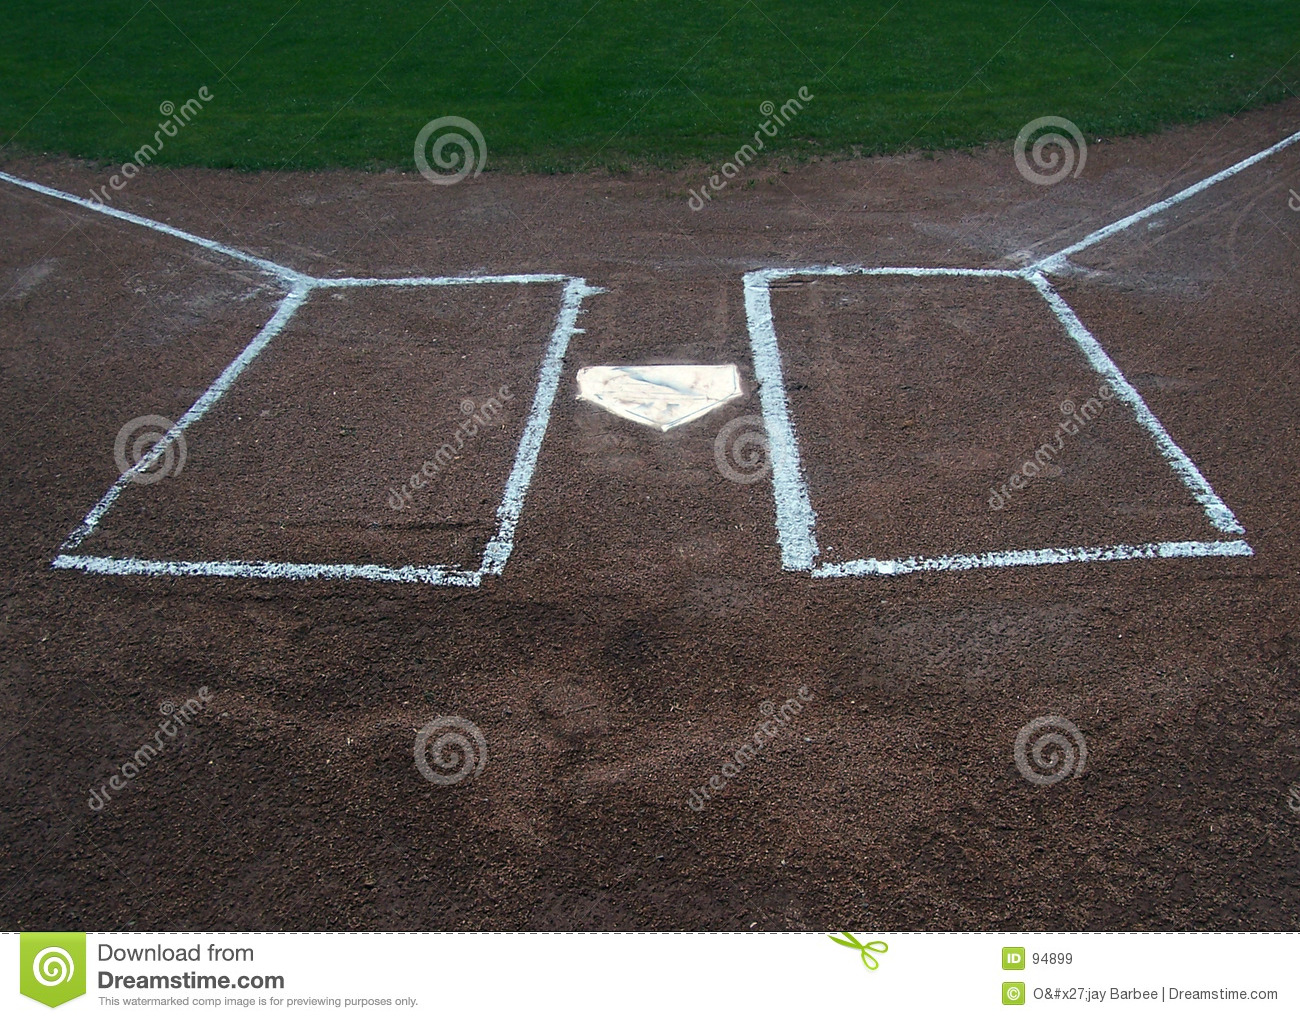 home plate and batters box royalty free stock images image 94899